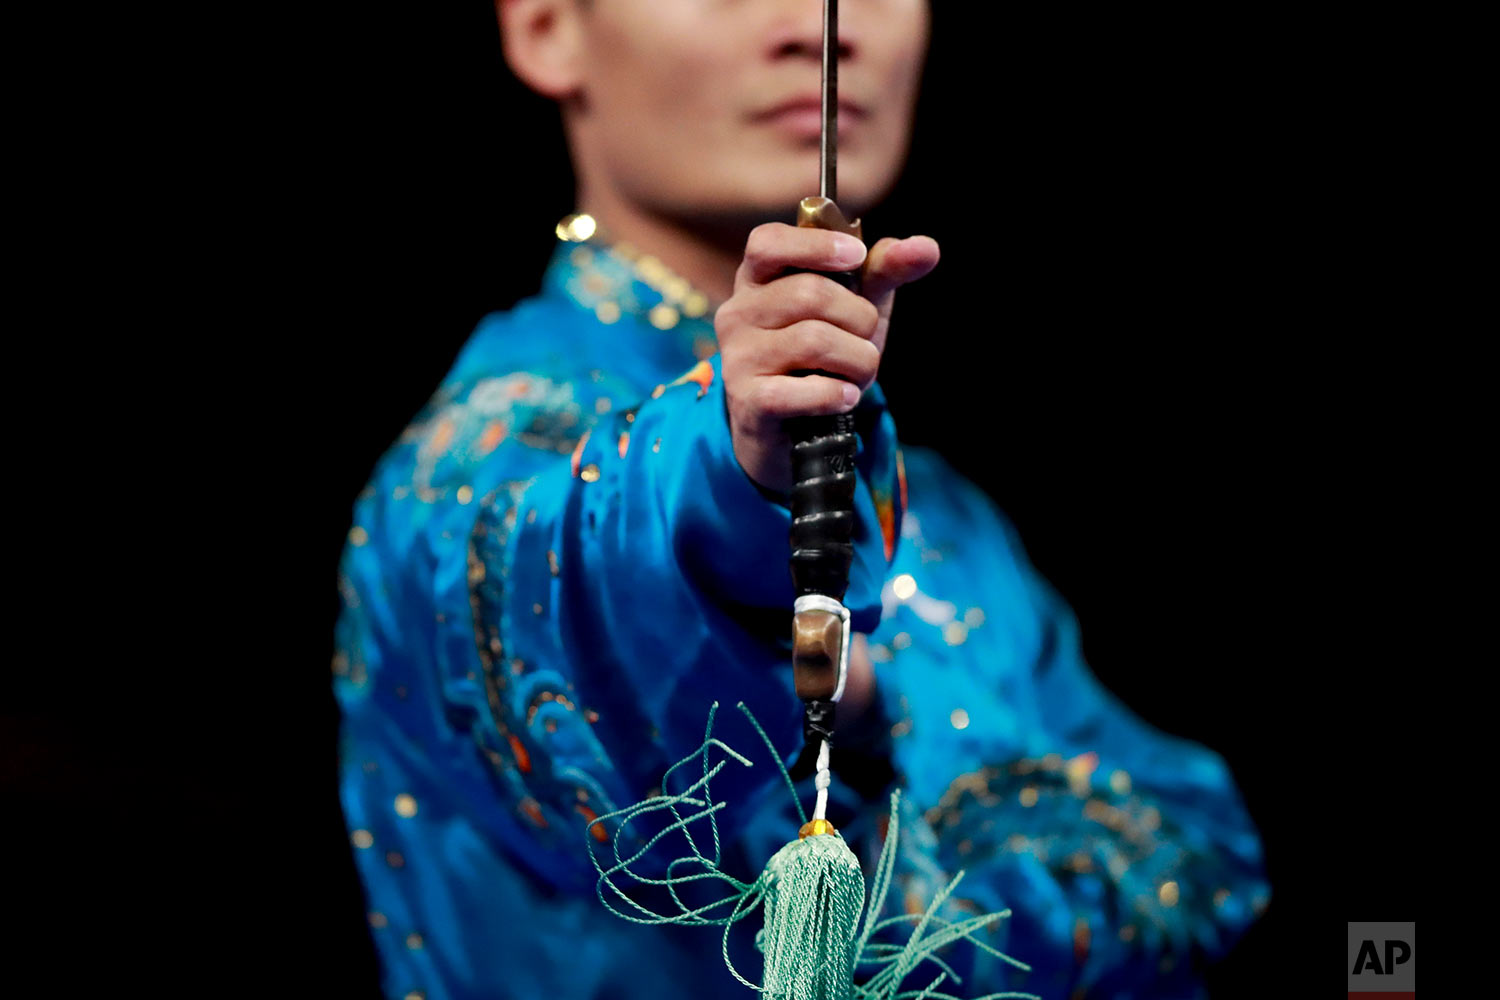 Kazahastan's Askarbay Yedibayev during his taijijian wushu performance at the 18th Asian Games in Jakarta, Indonesia, Wednesday, Aug. 22, 2018. (AP Photo/Bernat Armangue)